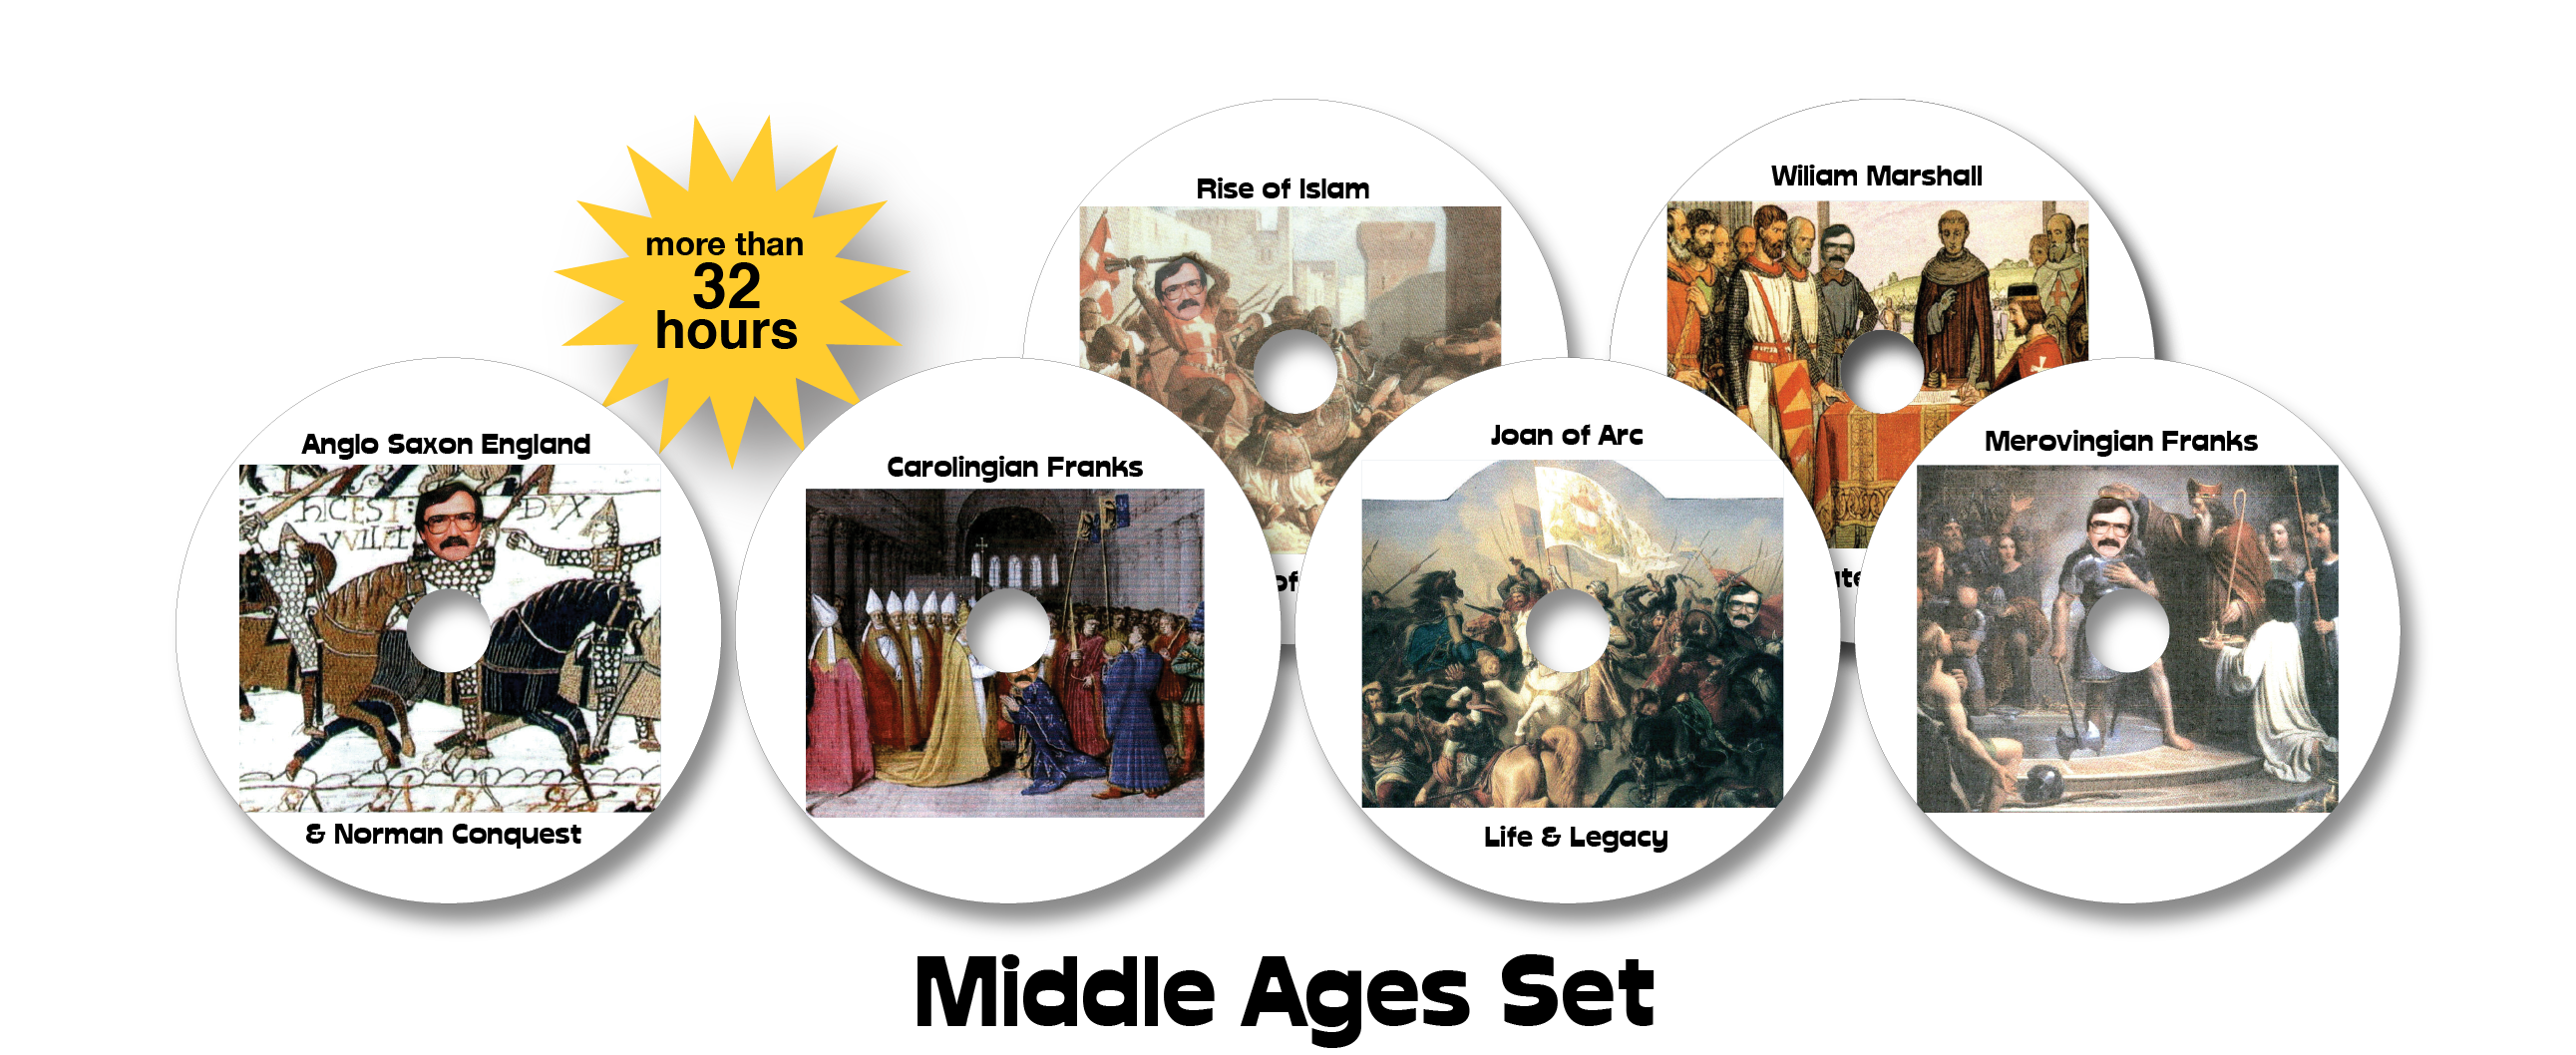 THE MIDDLE AGES DEAL